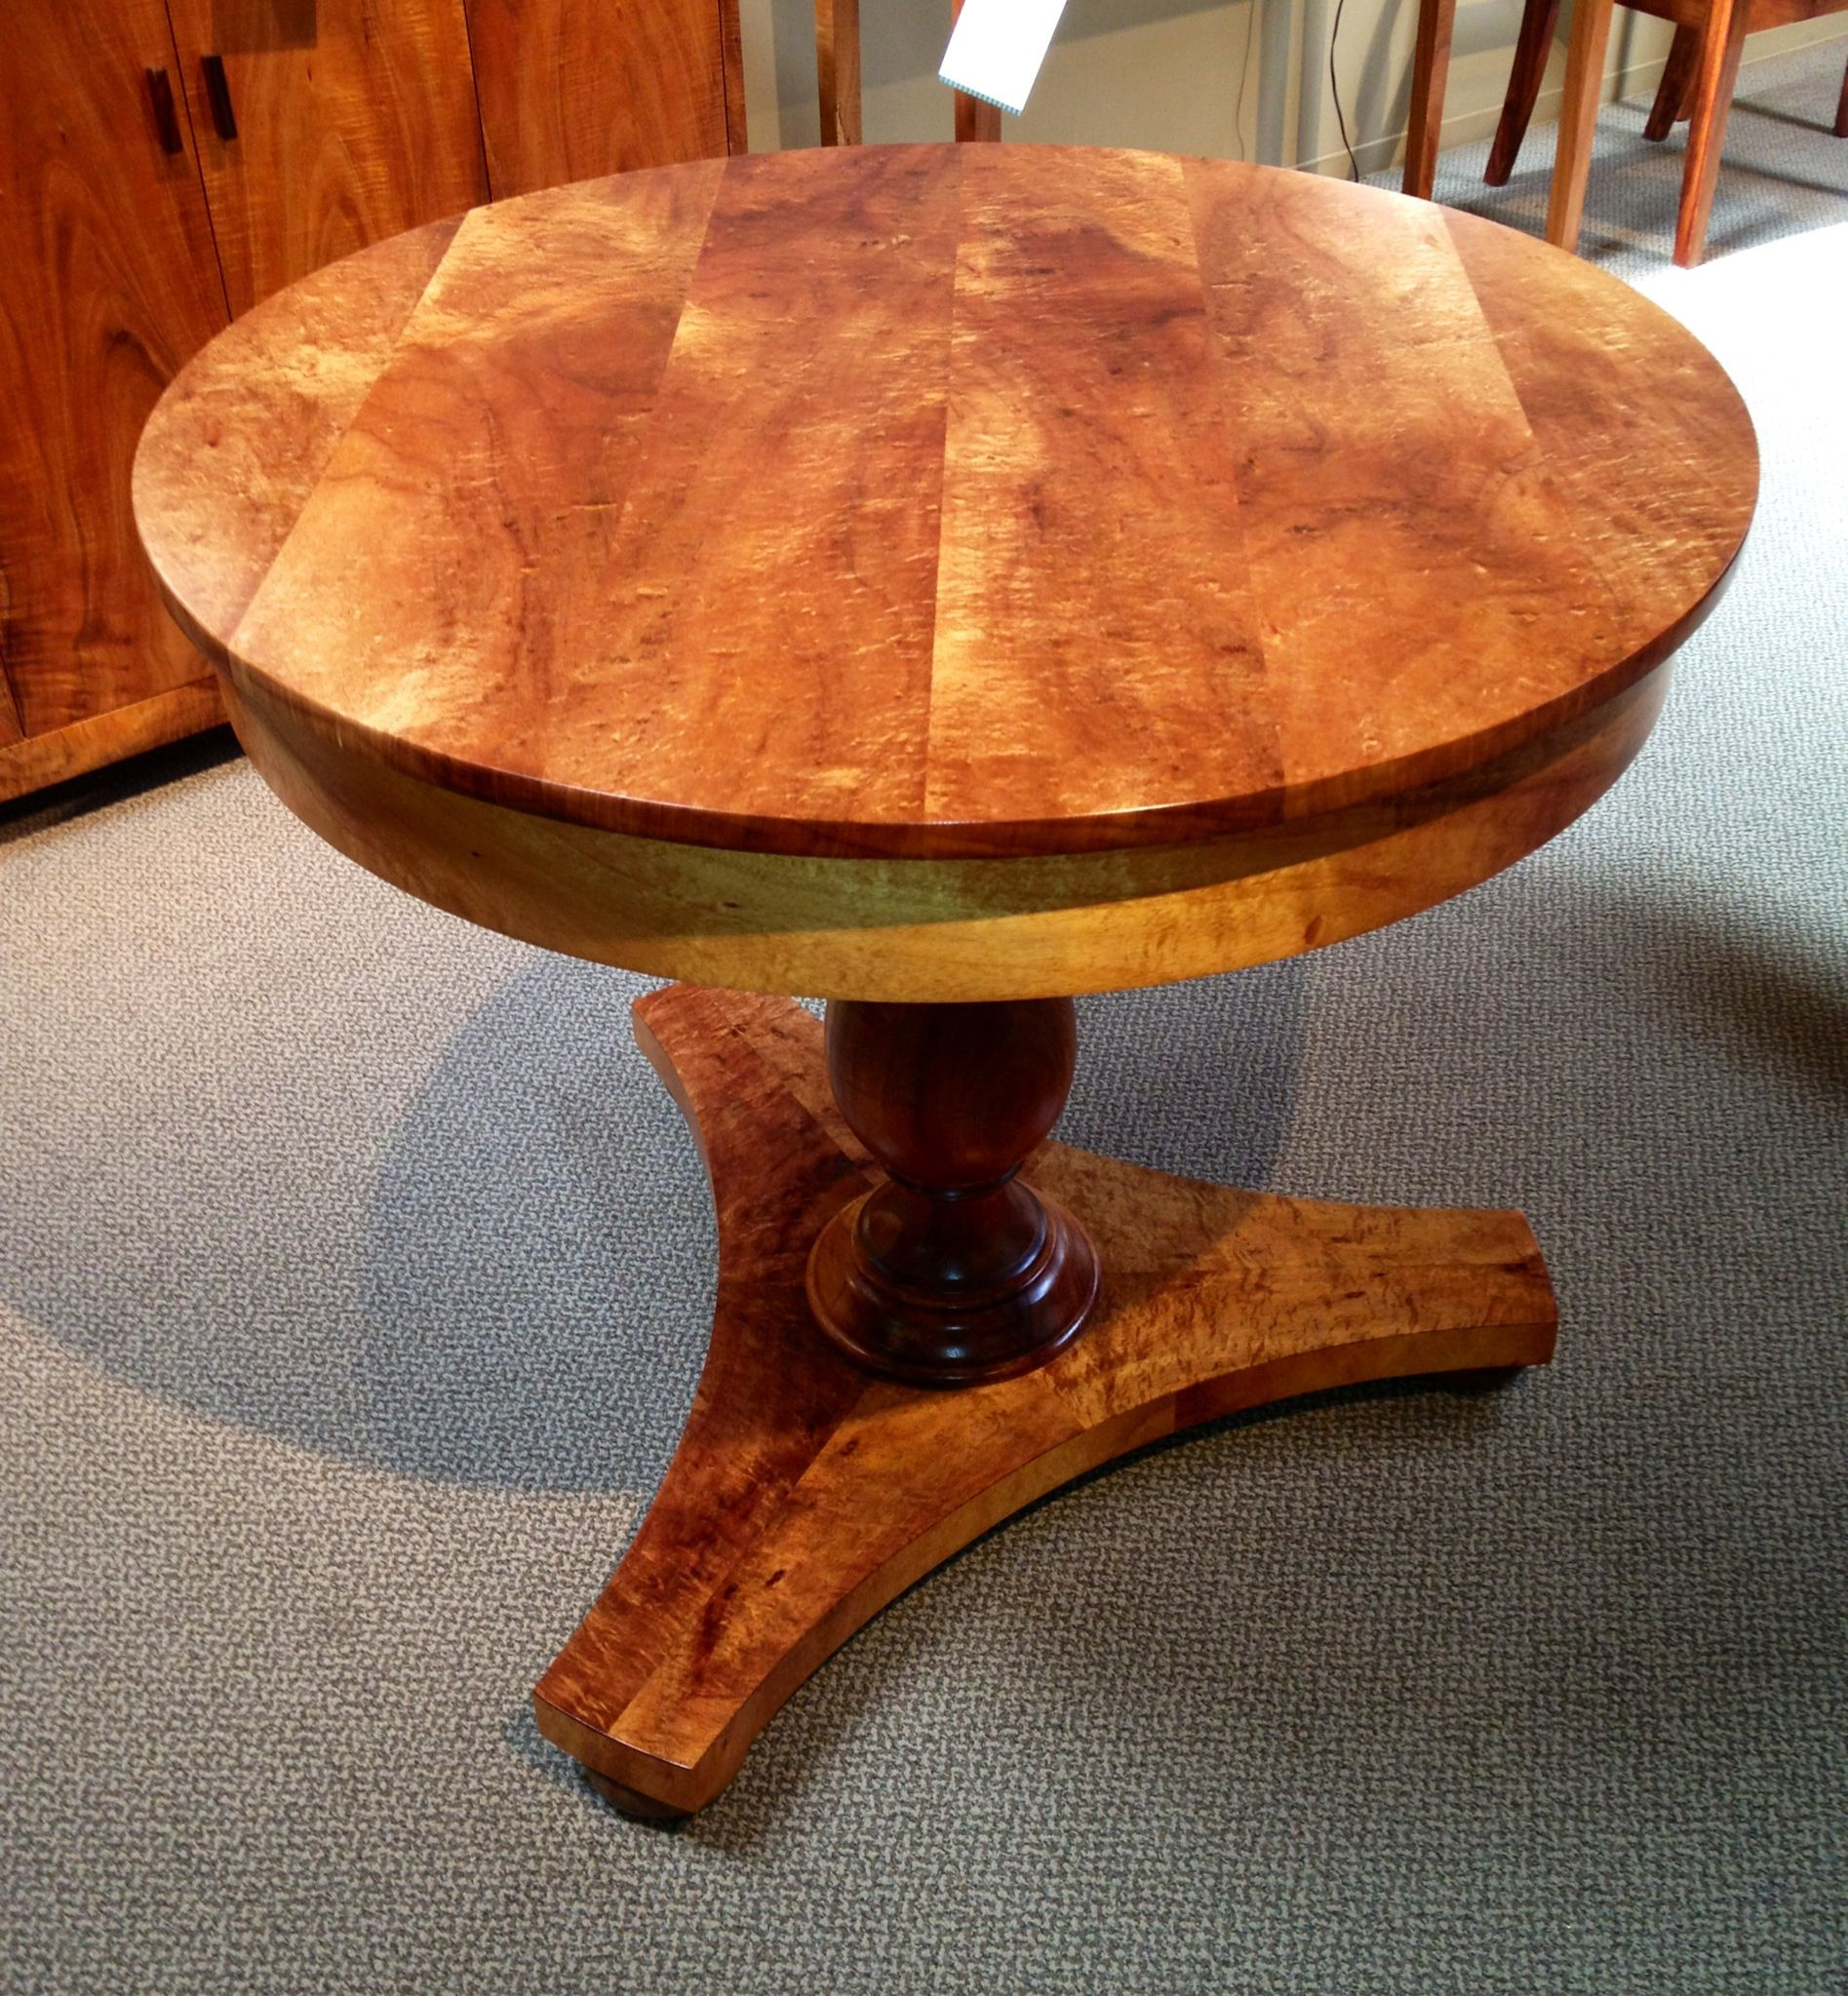 Curly Koa Entry Table With Lathe Turned Pedestal, Made By The Fine Furniture  Craftsmen